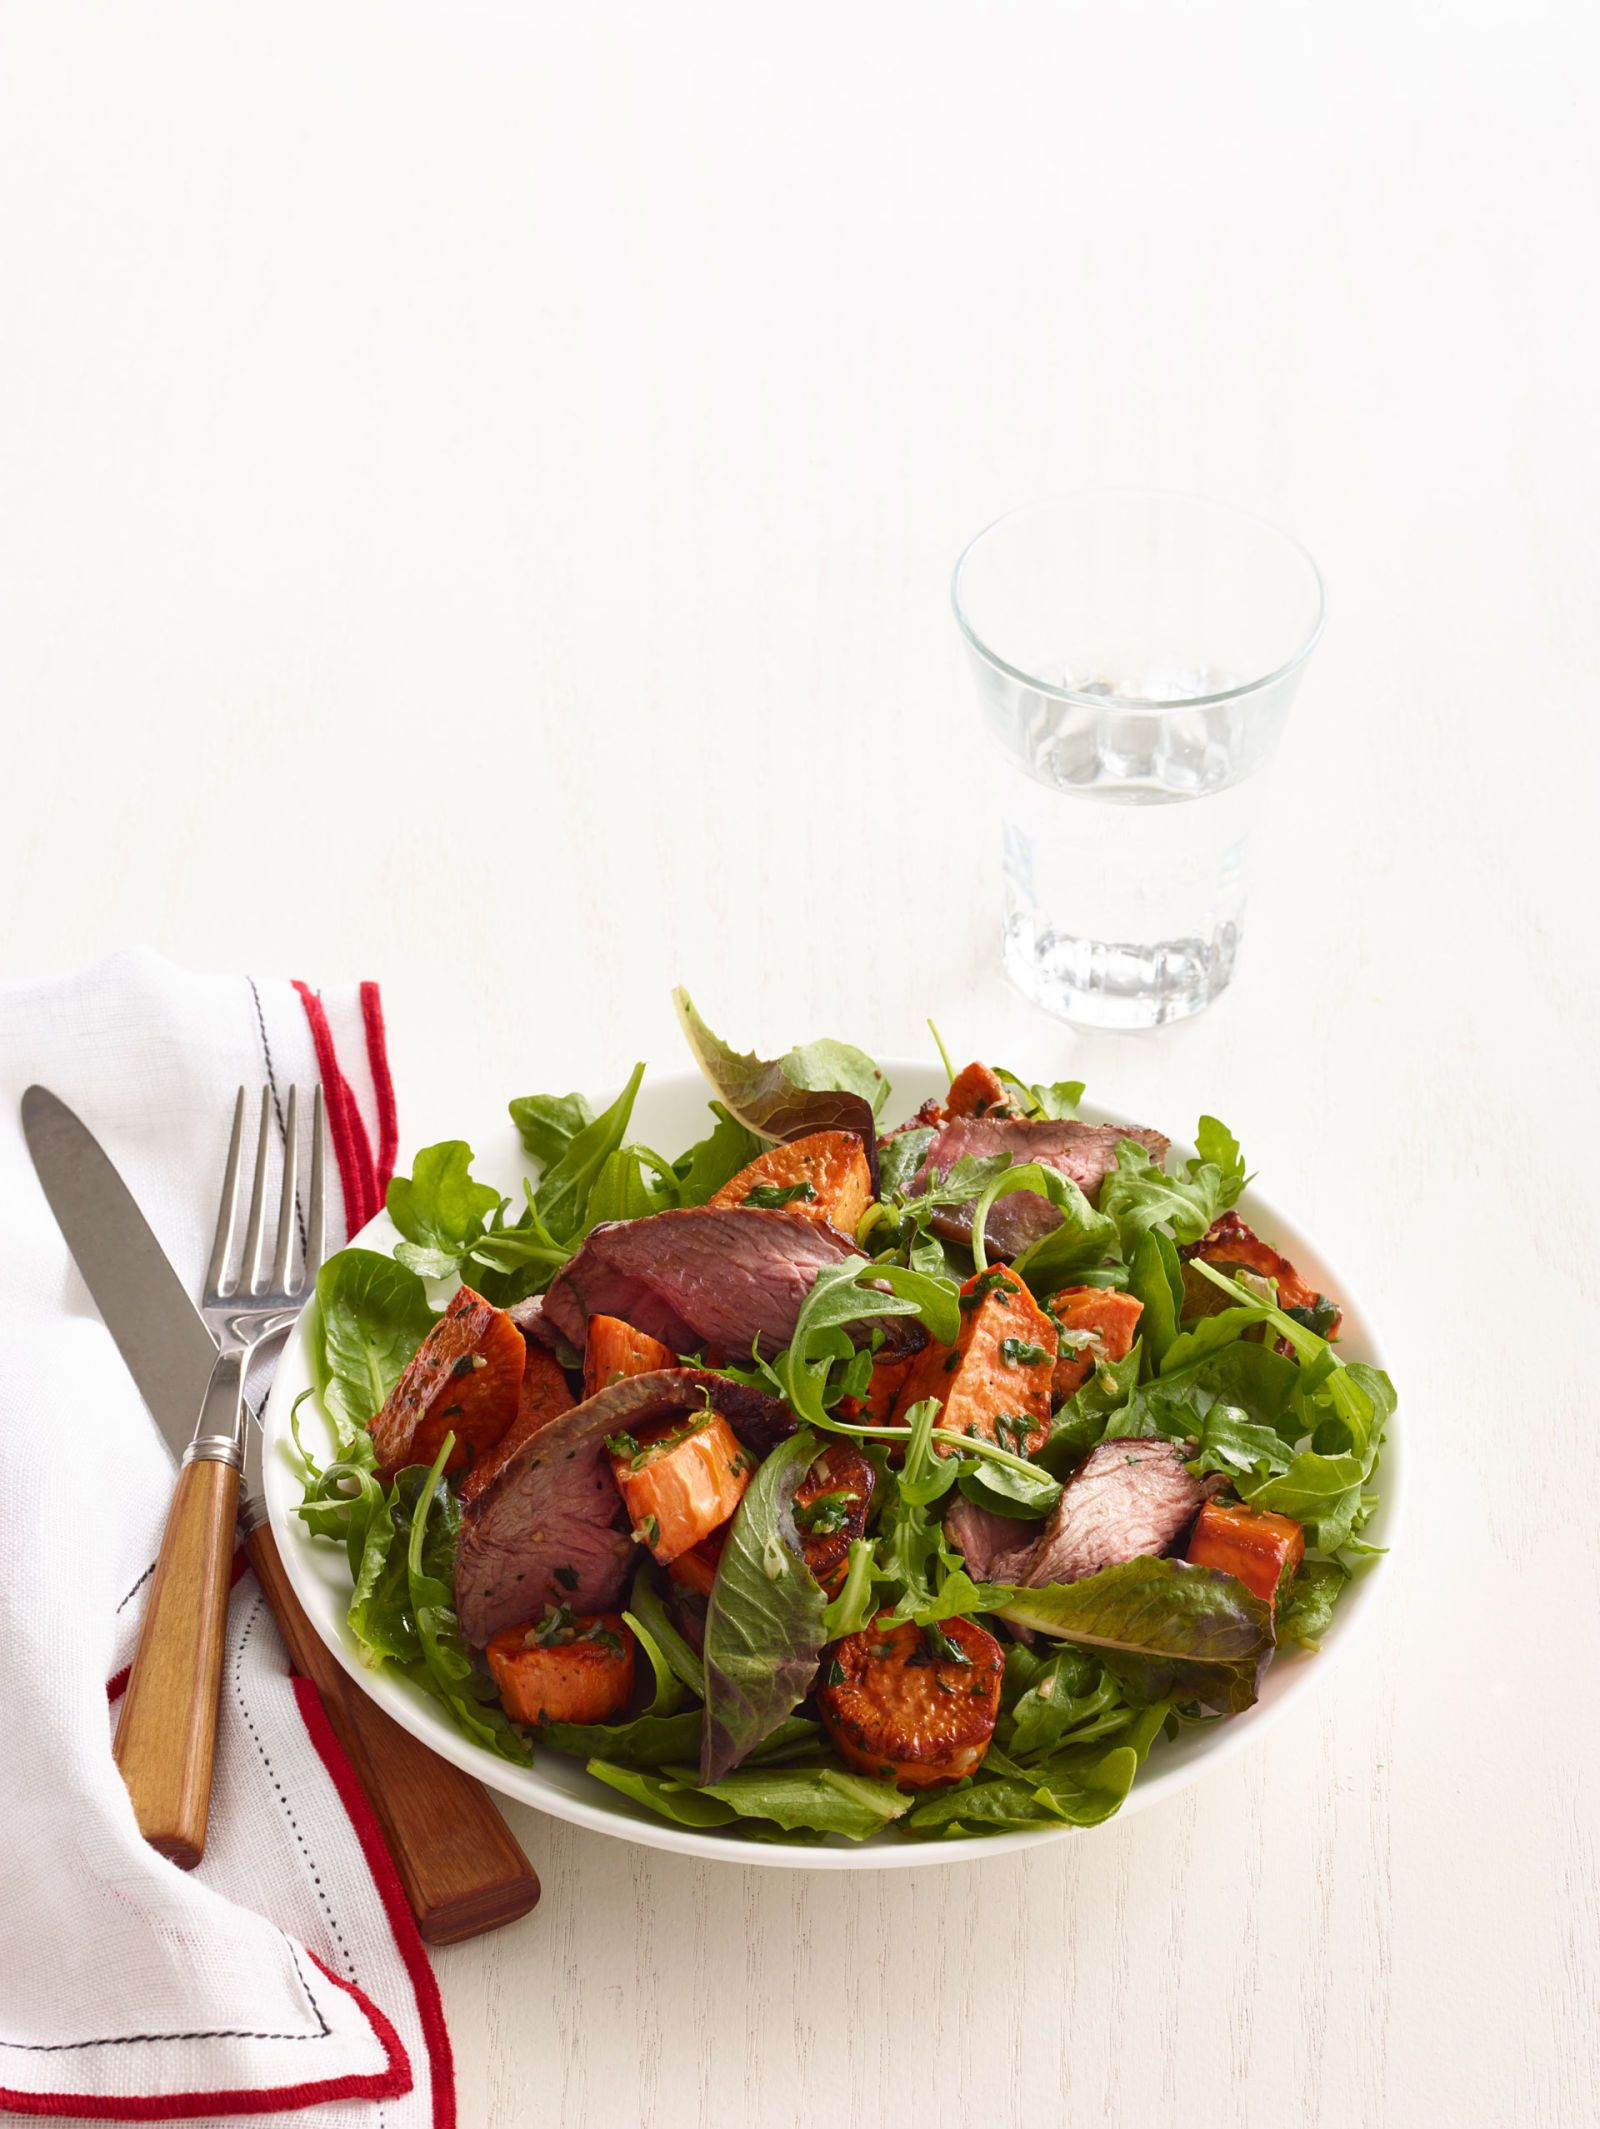 Arugula, Sweet Potato, and Spiced Steak Salad